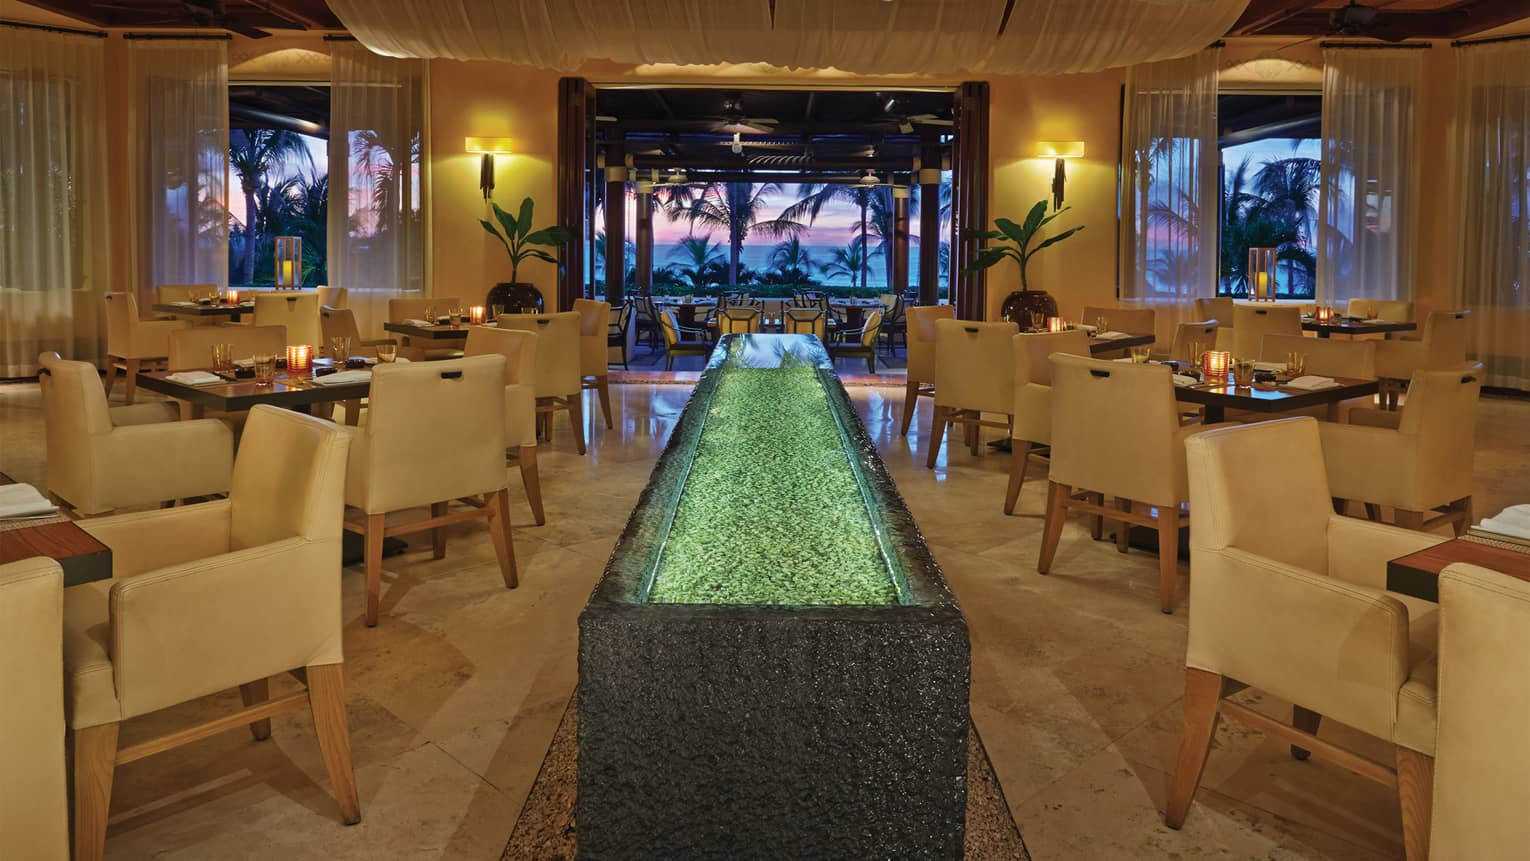 Aramara indoor dining room with white chairs, candle-lit tables, water table, opening to patio